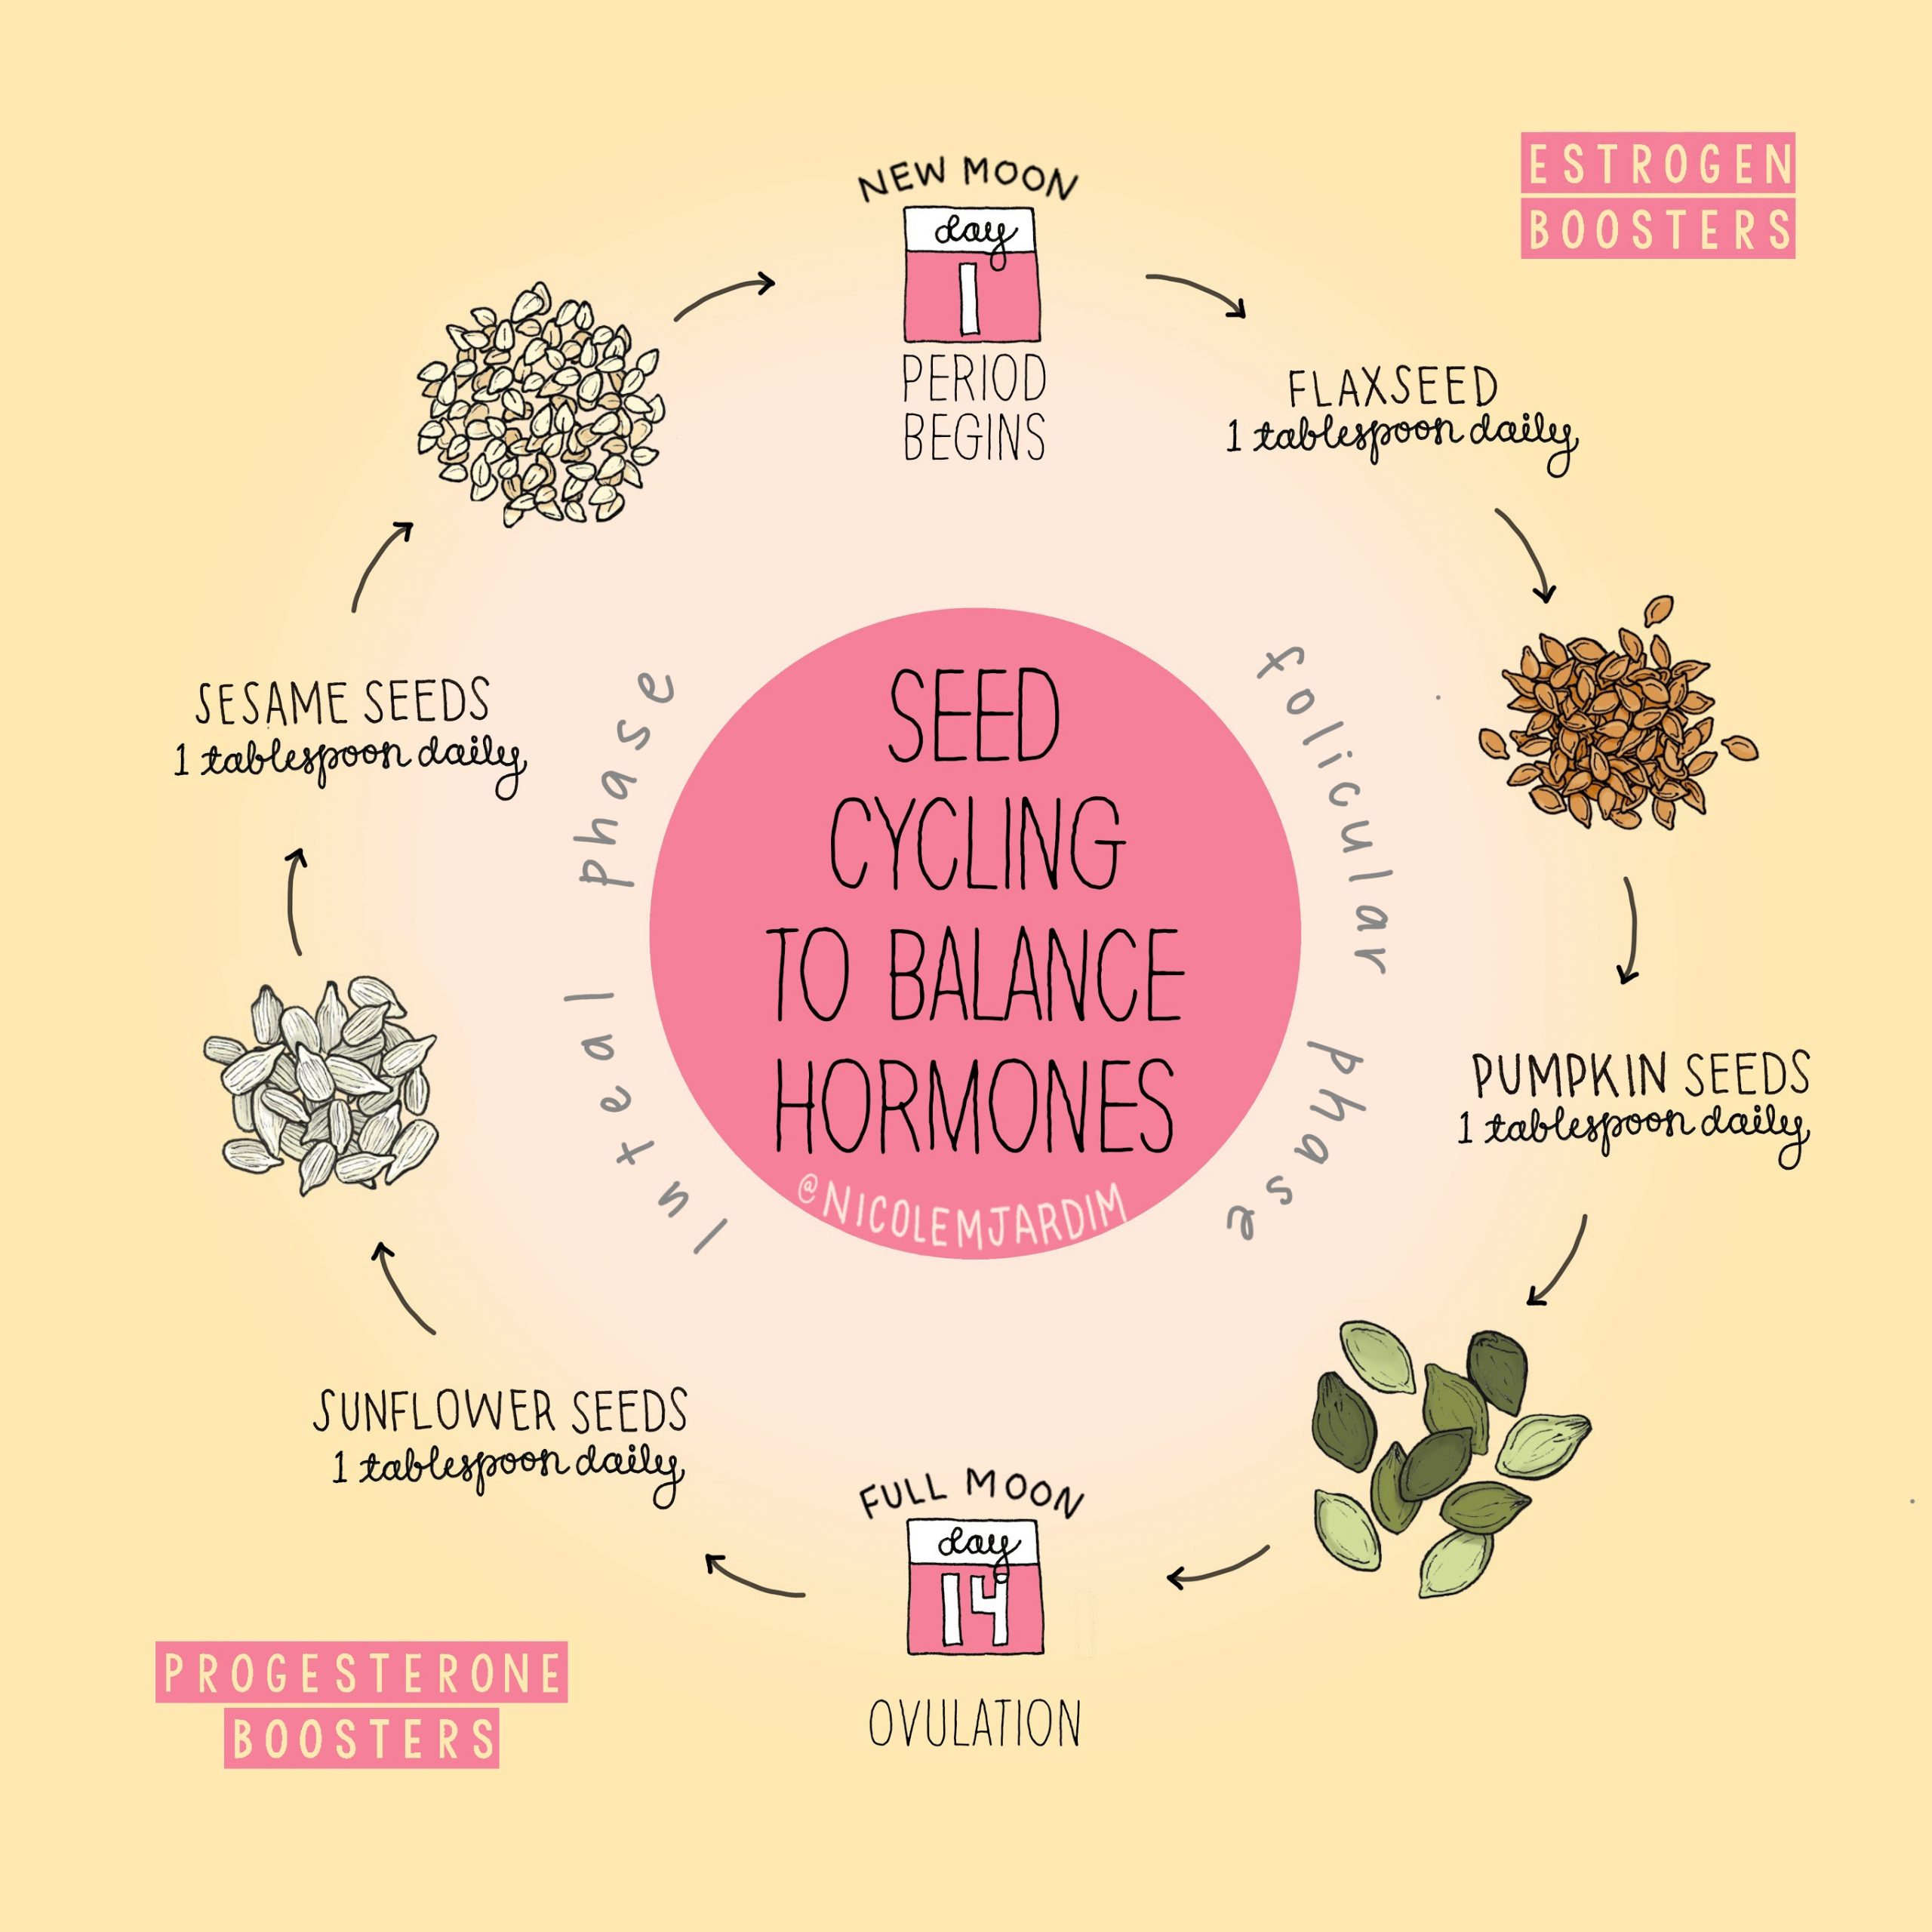 How to do seed cycling using flax, pumpkin, sesame and sunflower seeds